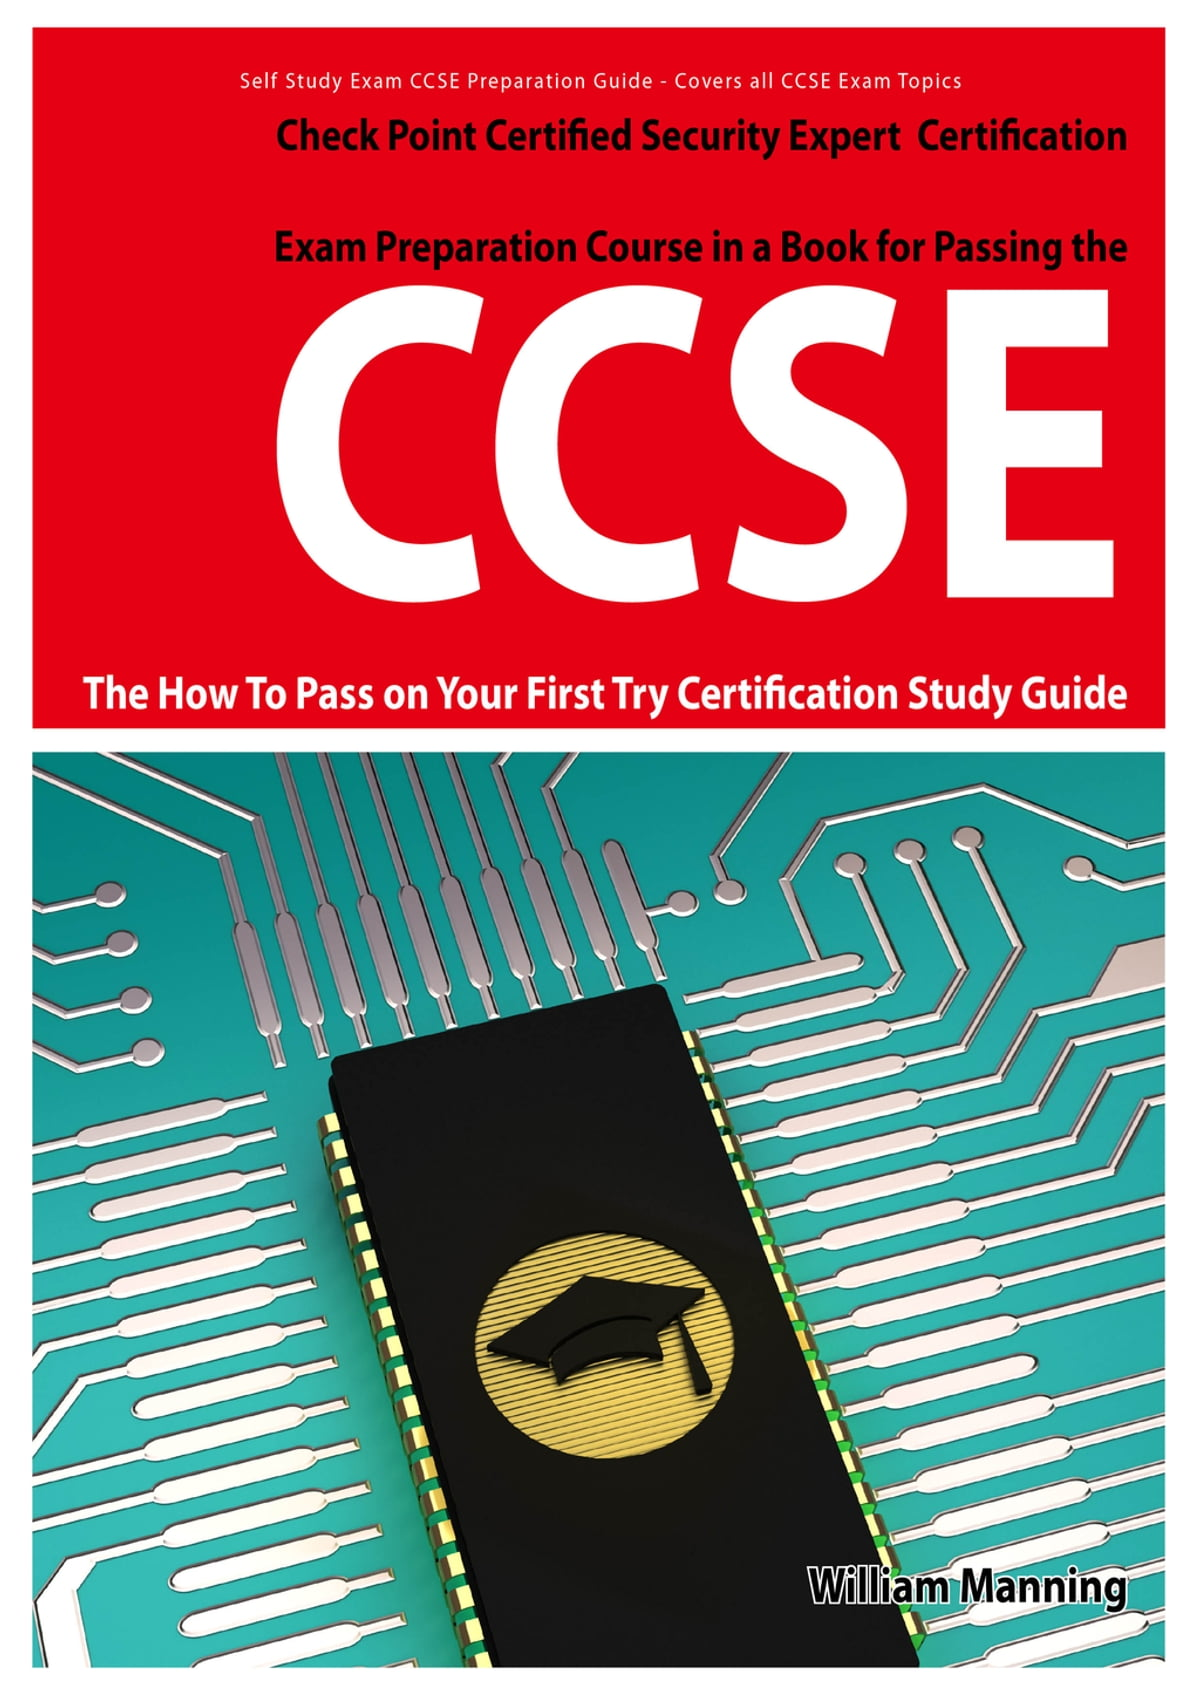 Ccse check point certified security expert exam preparation course ccse check point certified security expert exam preparation course in a book for passing the ccse certified exam the how to pass on your first try 1betcityfo Gallery